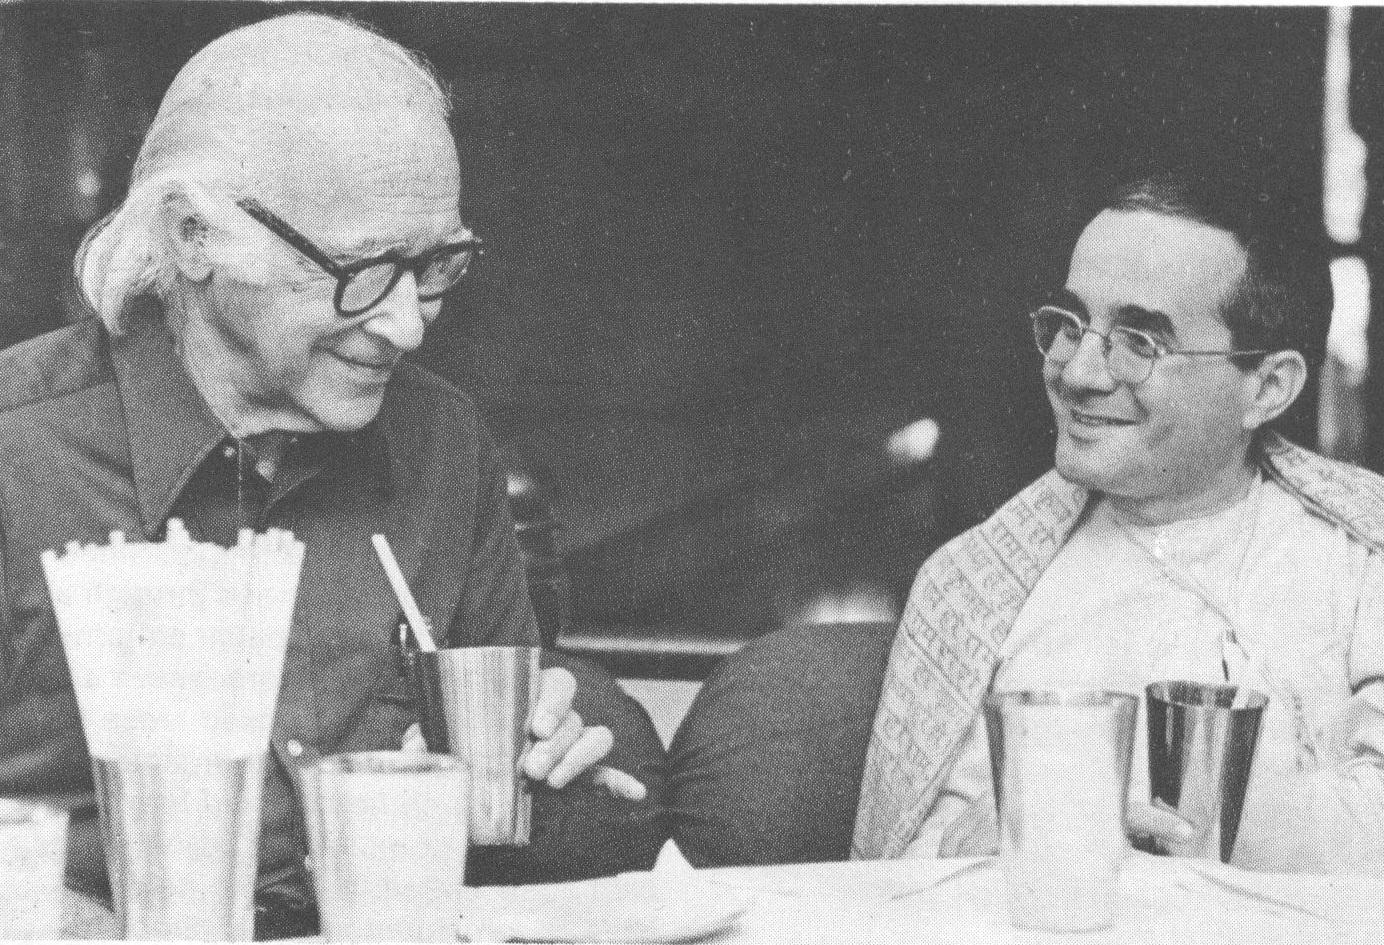 Sripad Bhakti Madhava Puri Maharaja, Ph.D. with Nobel Laureate, George Wald at Bhaktivedanta Institute in 1981